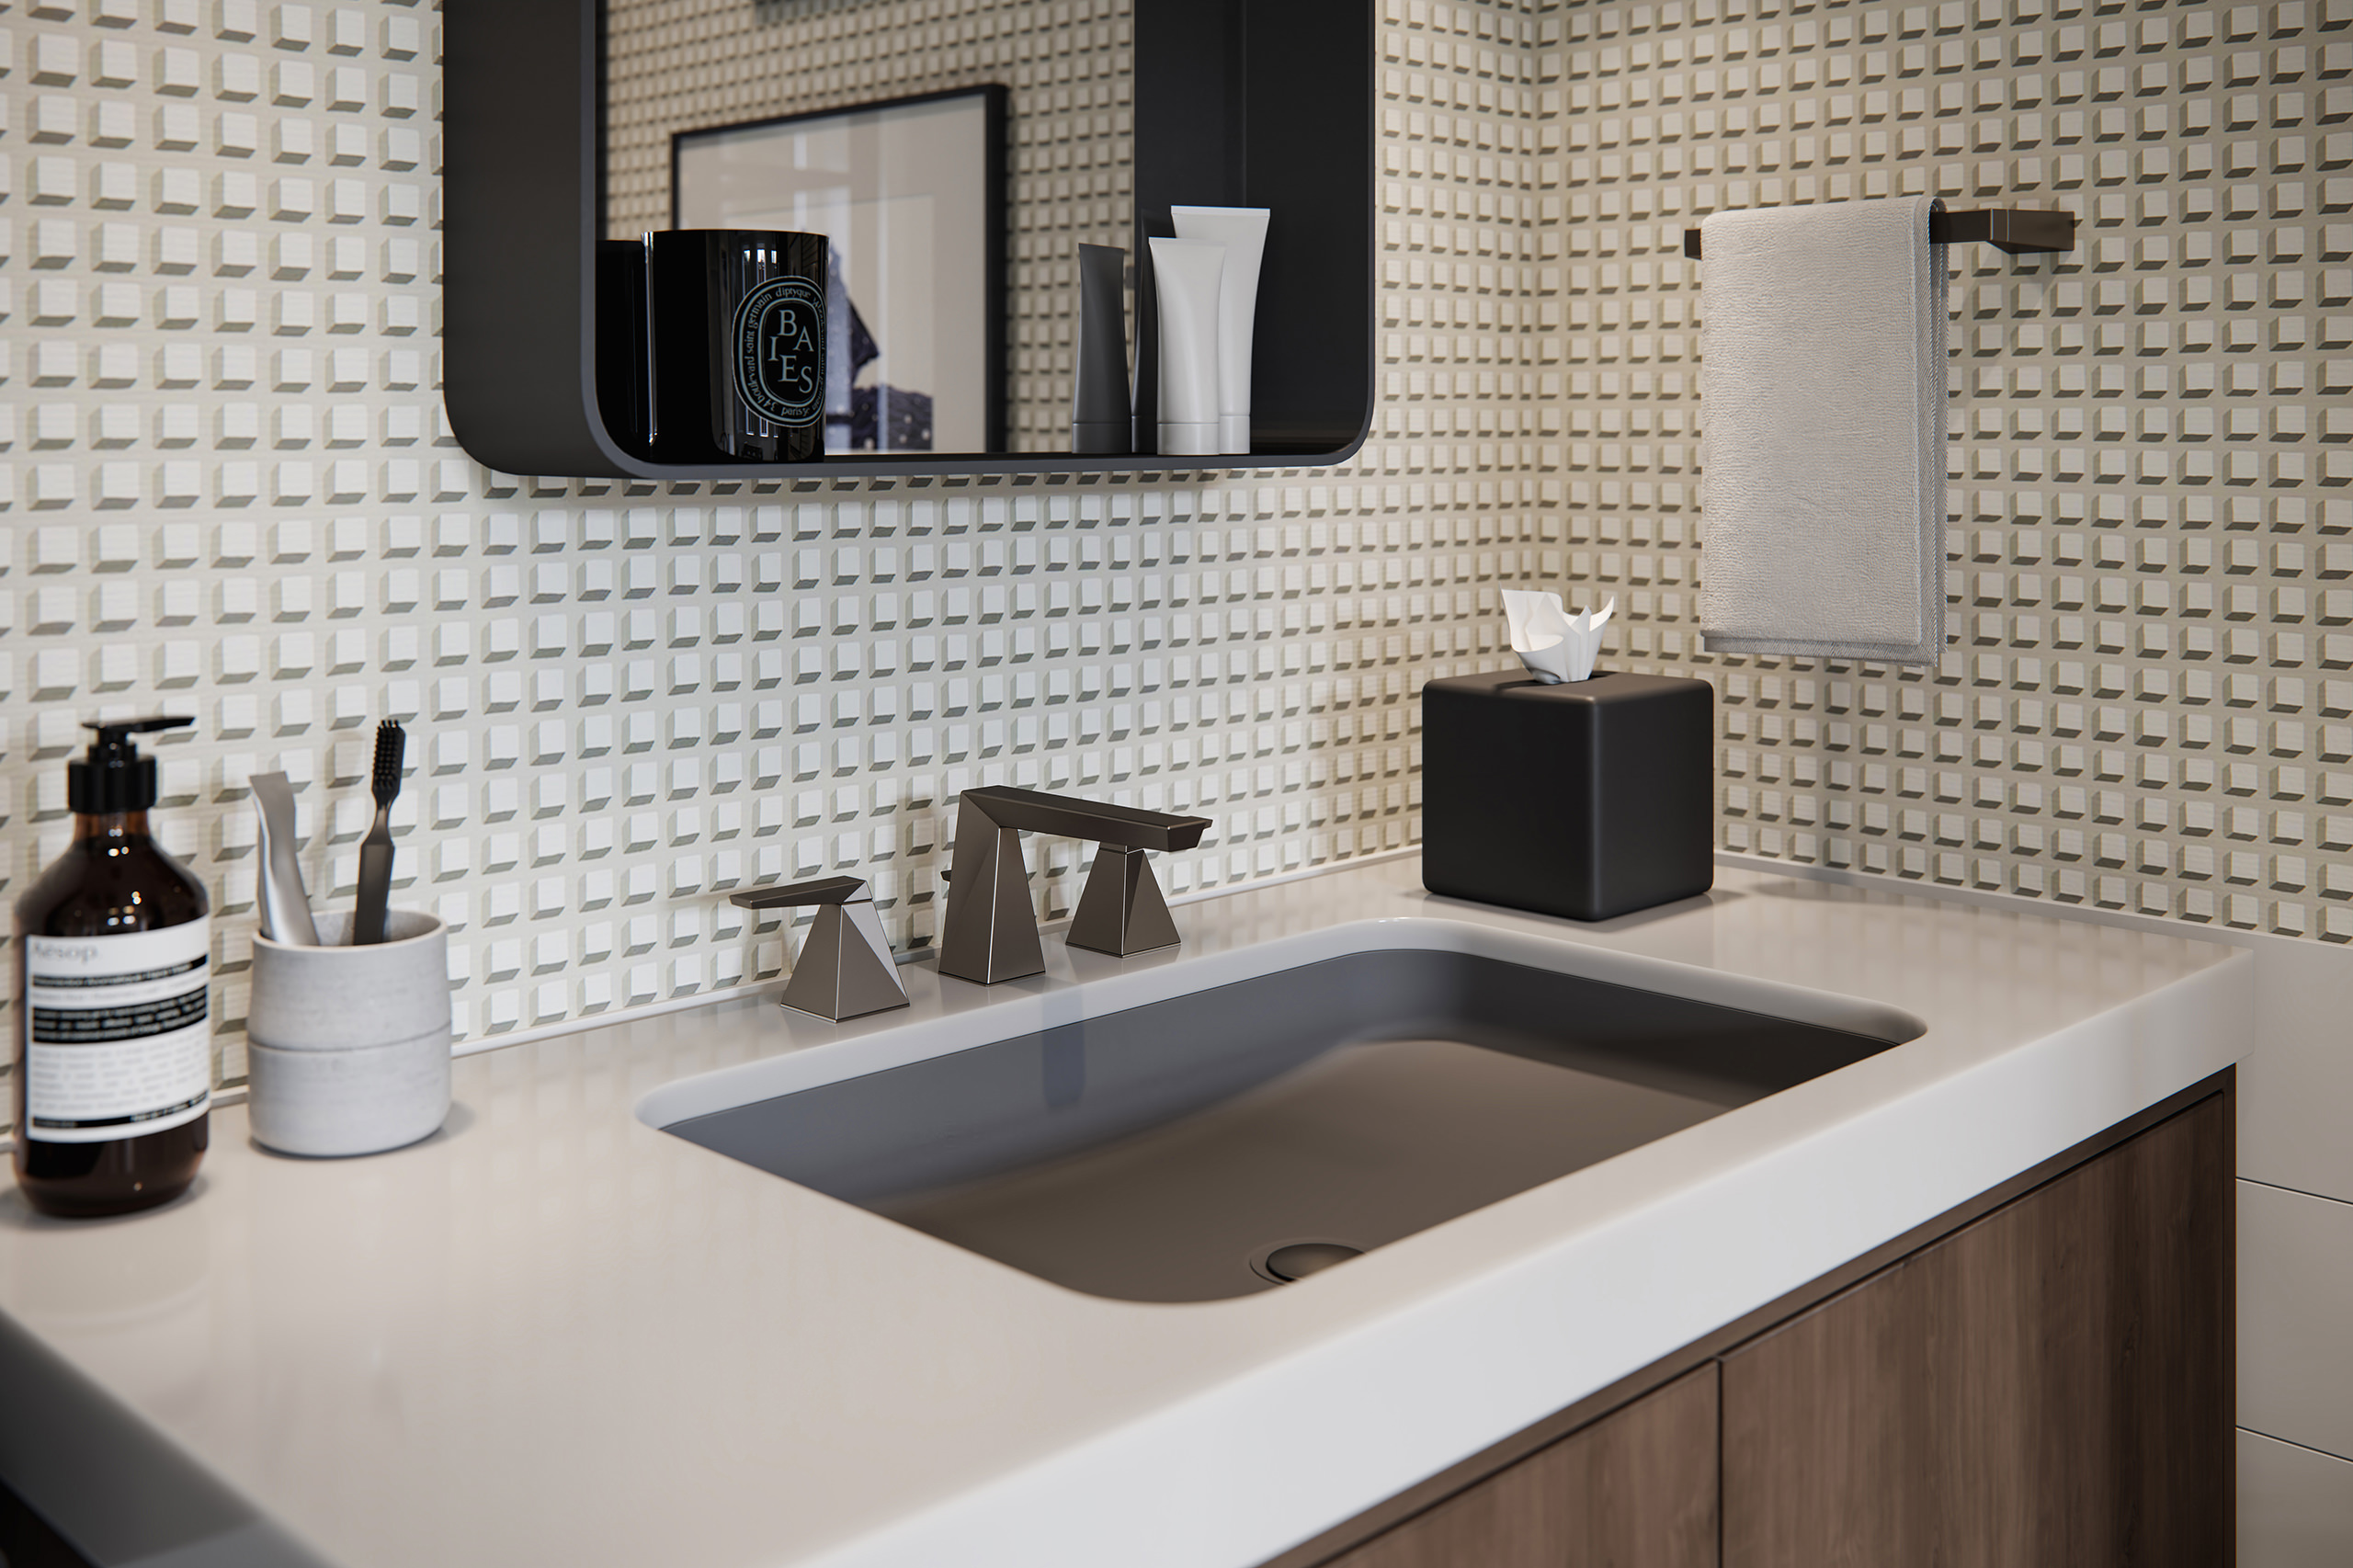 Crop 3D view of a wash stand with a faceted Delta Trillian faucet and bath accessories